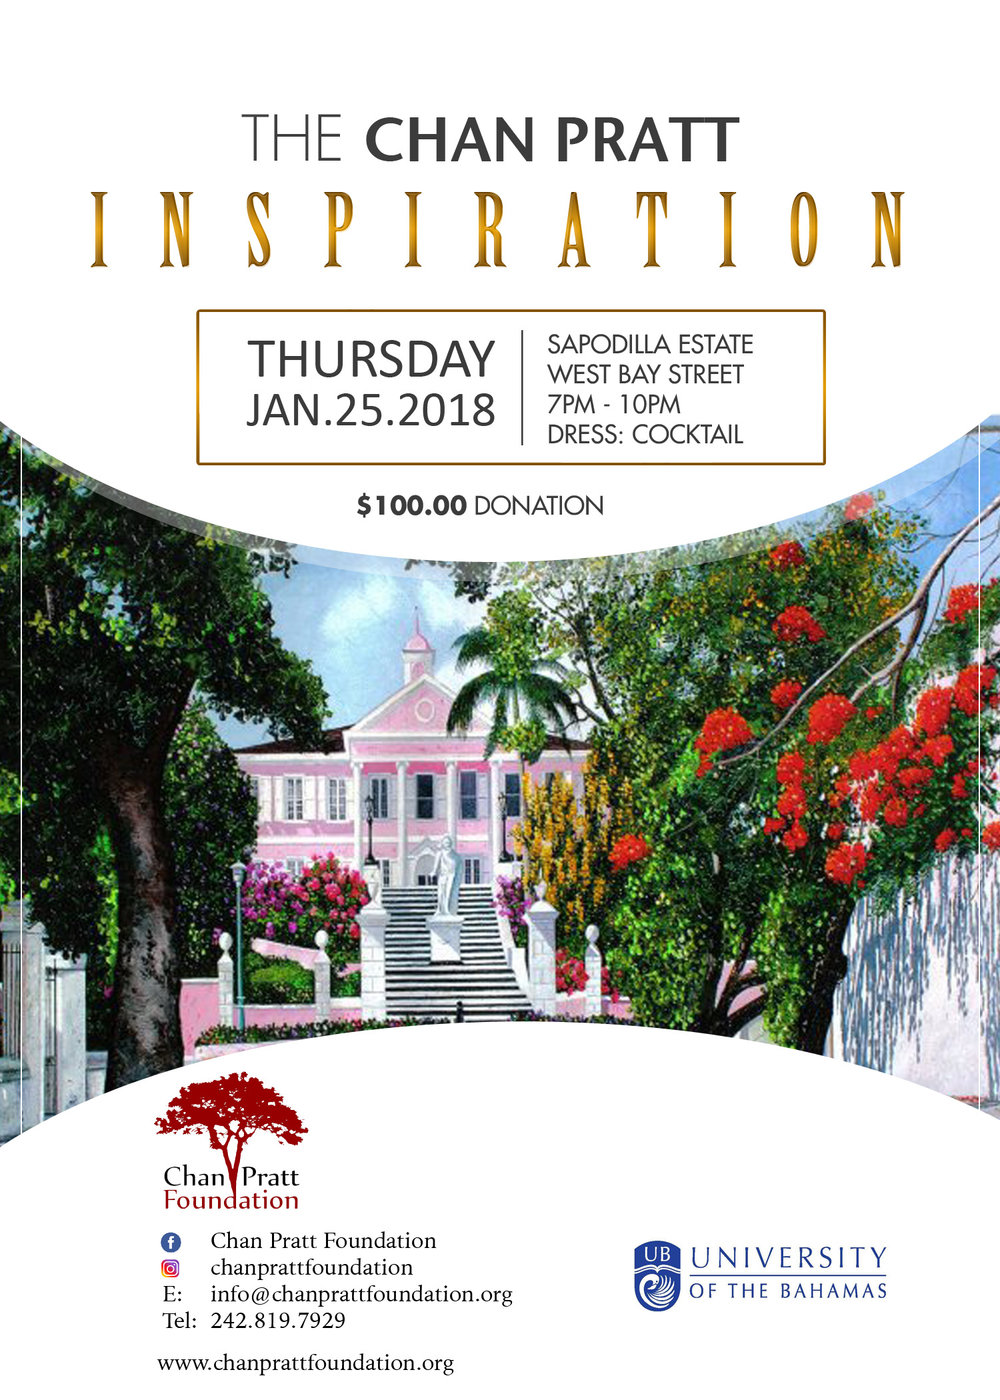 The Chan Pratt Inspiration - 5 x 7 Flyer2.jpg